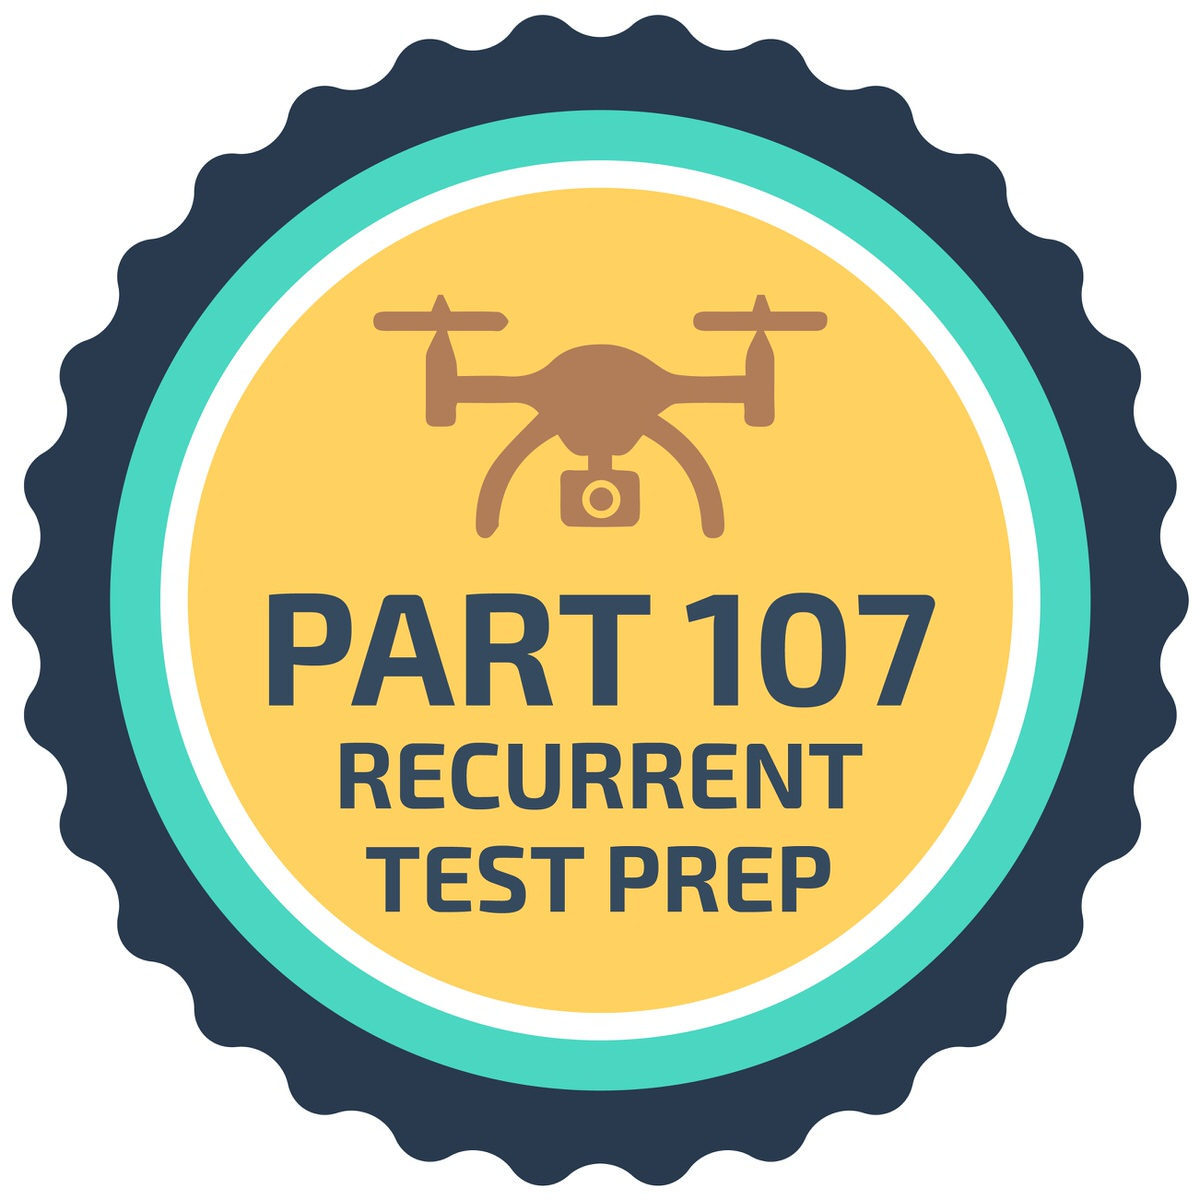 Part 107 Recurrent Test Prep